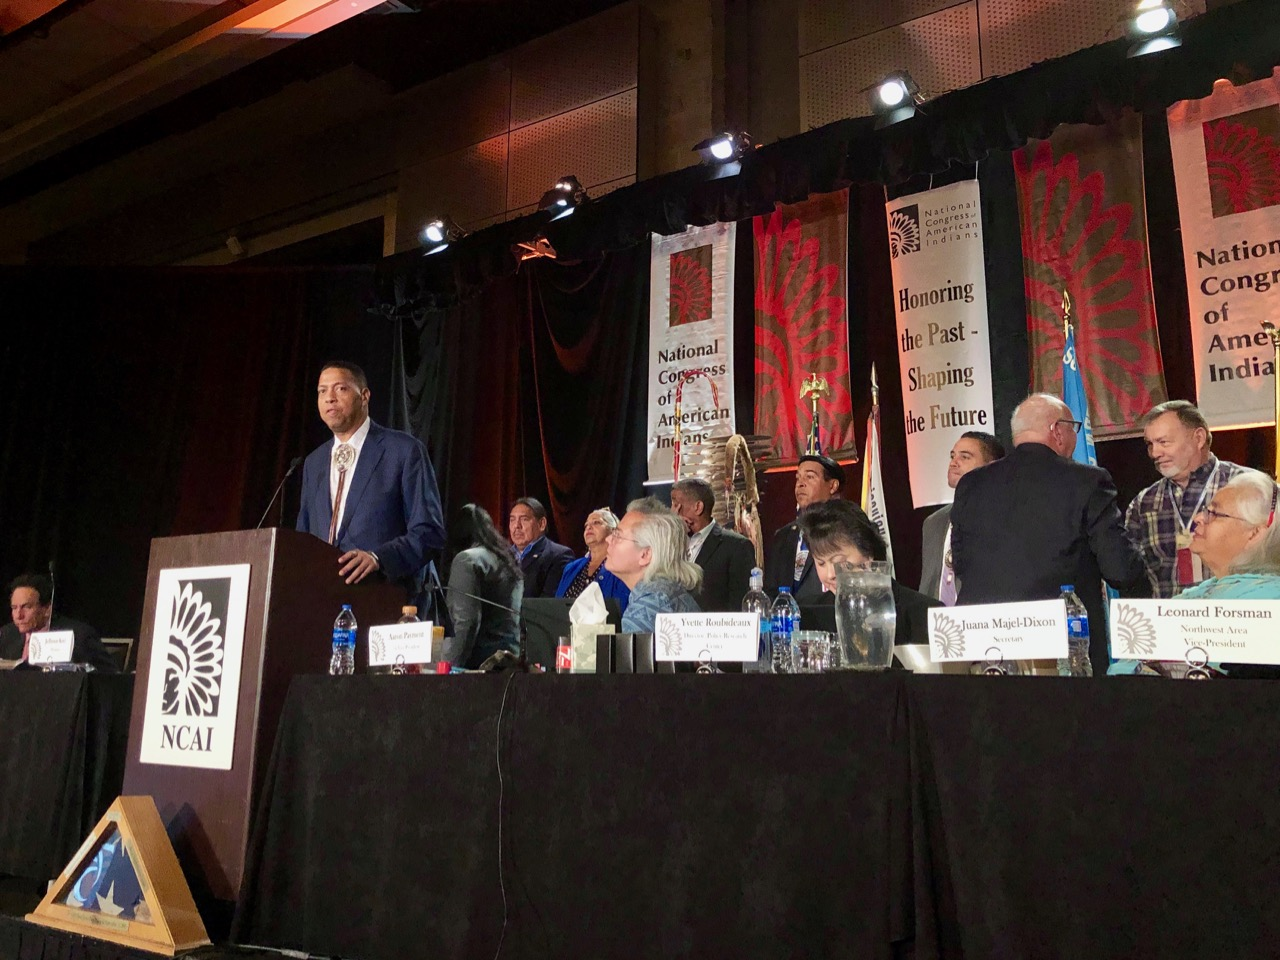 National Congress of American Indians unites in face of termination threat